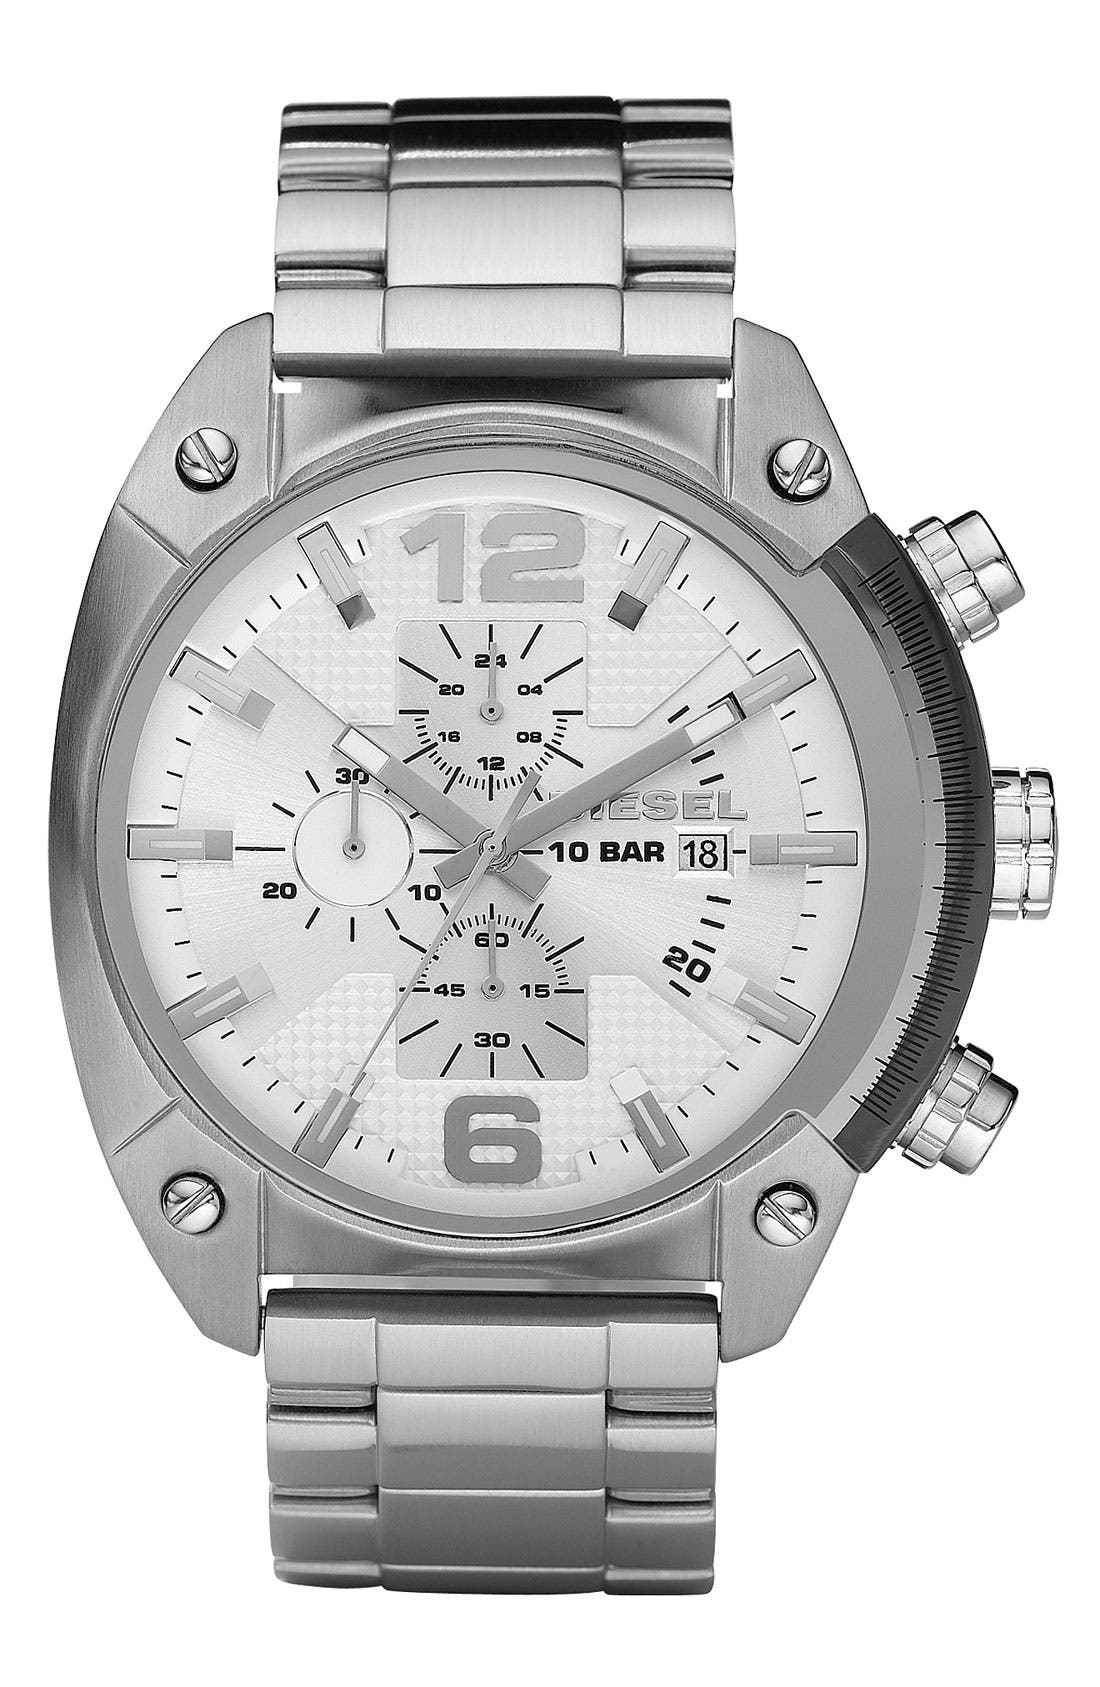 Main Image - DIESEL® 'Overflow' Chronograph Bracelet Watch, 46mm x 49mm